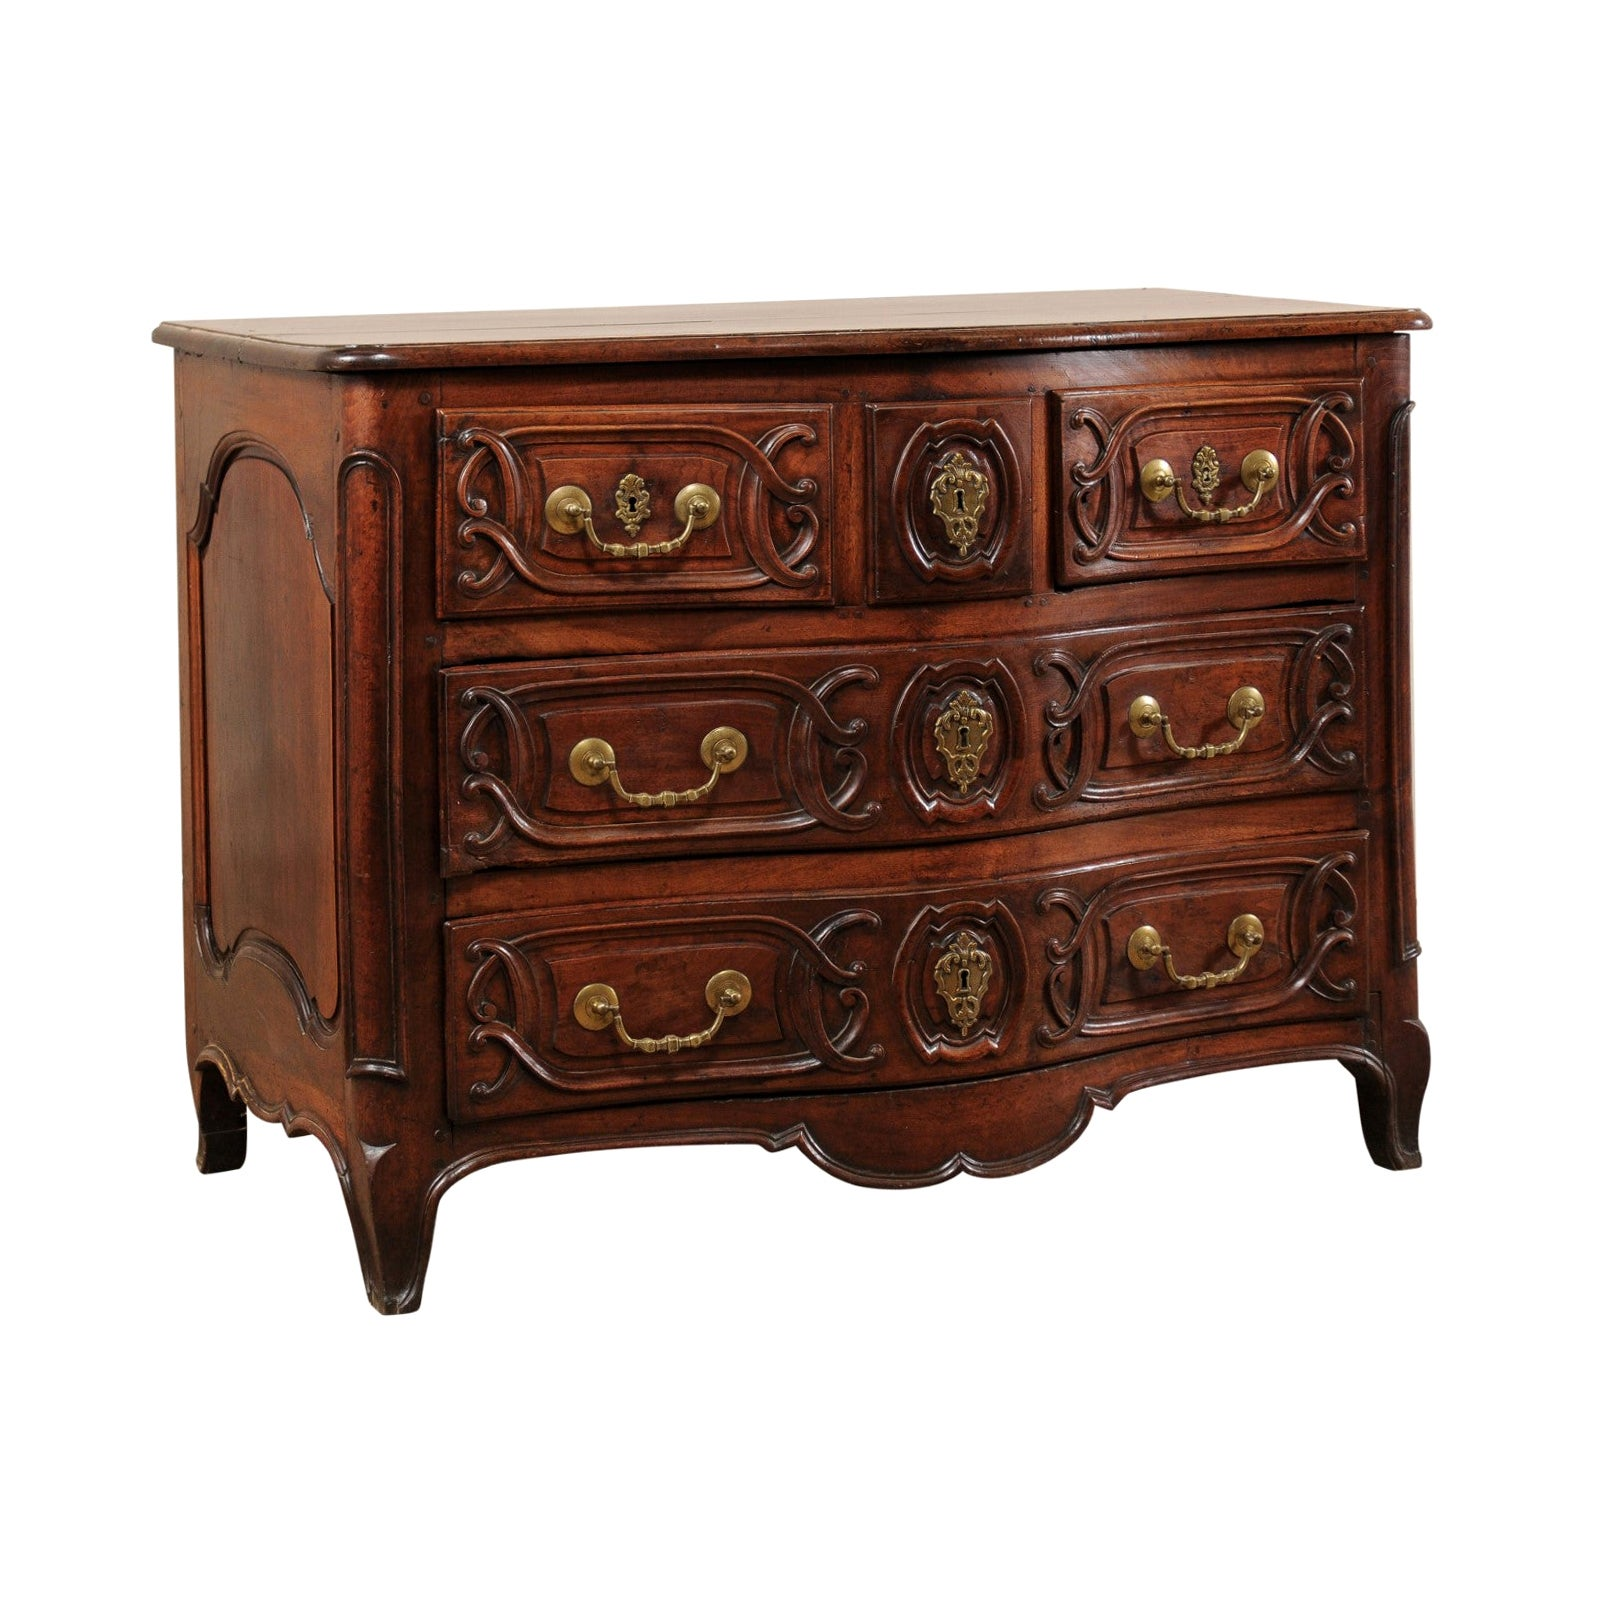 Elegant 18th Century French Louis XV Serpentine Commode